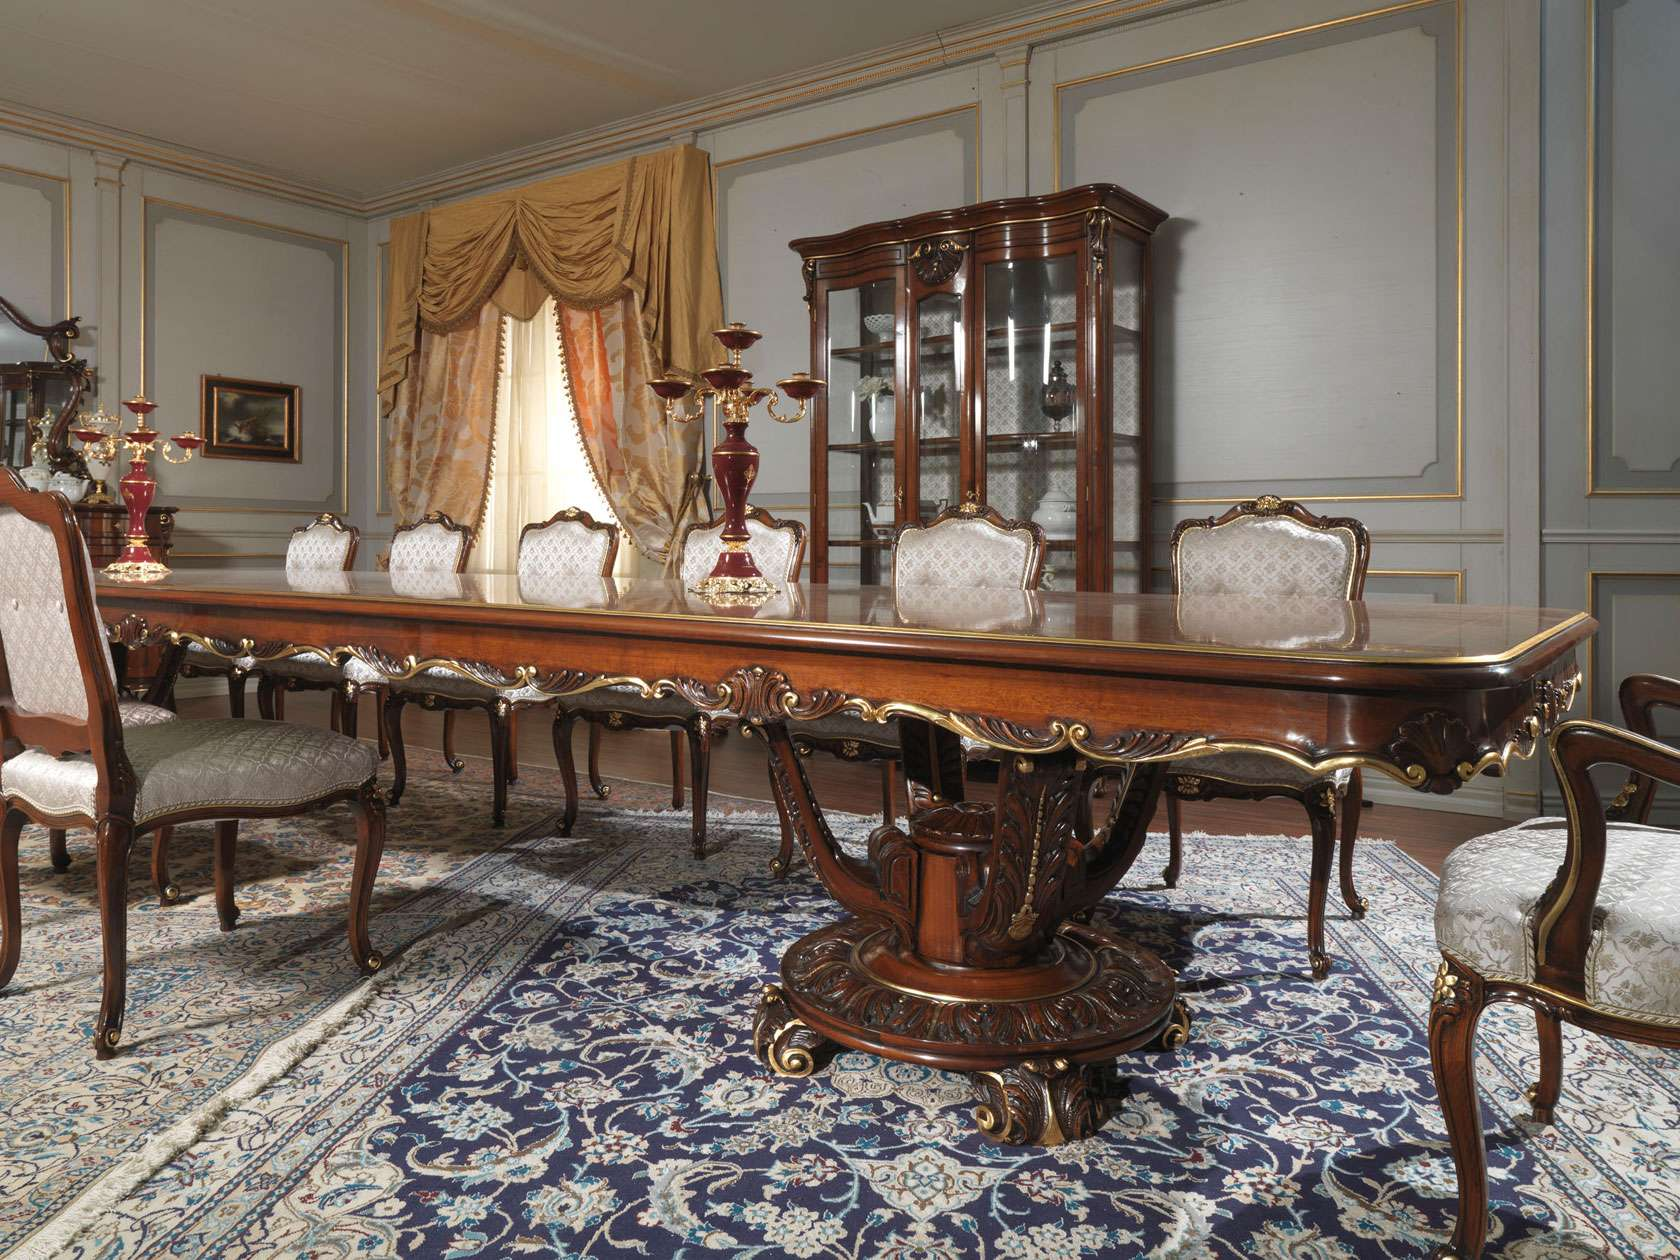 Louis xv living room furniture - Carved Table And Glass Showcase In Louis Xv Style